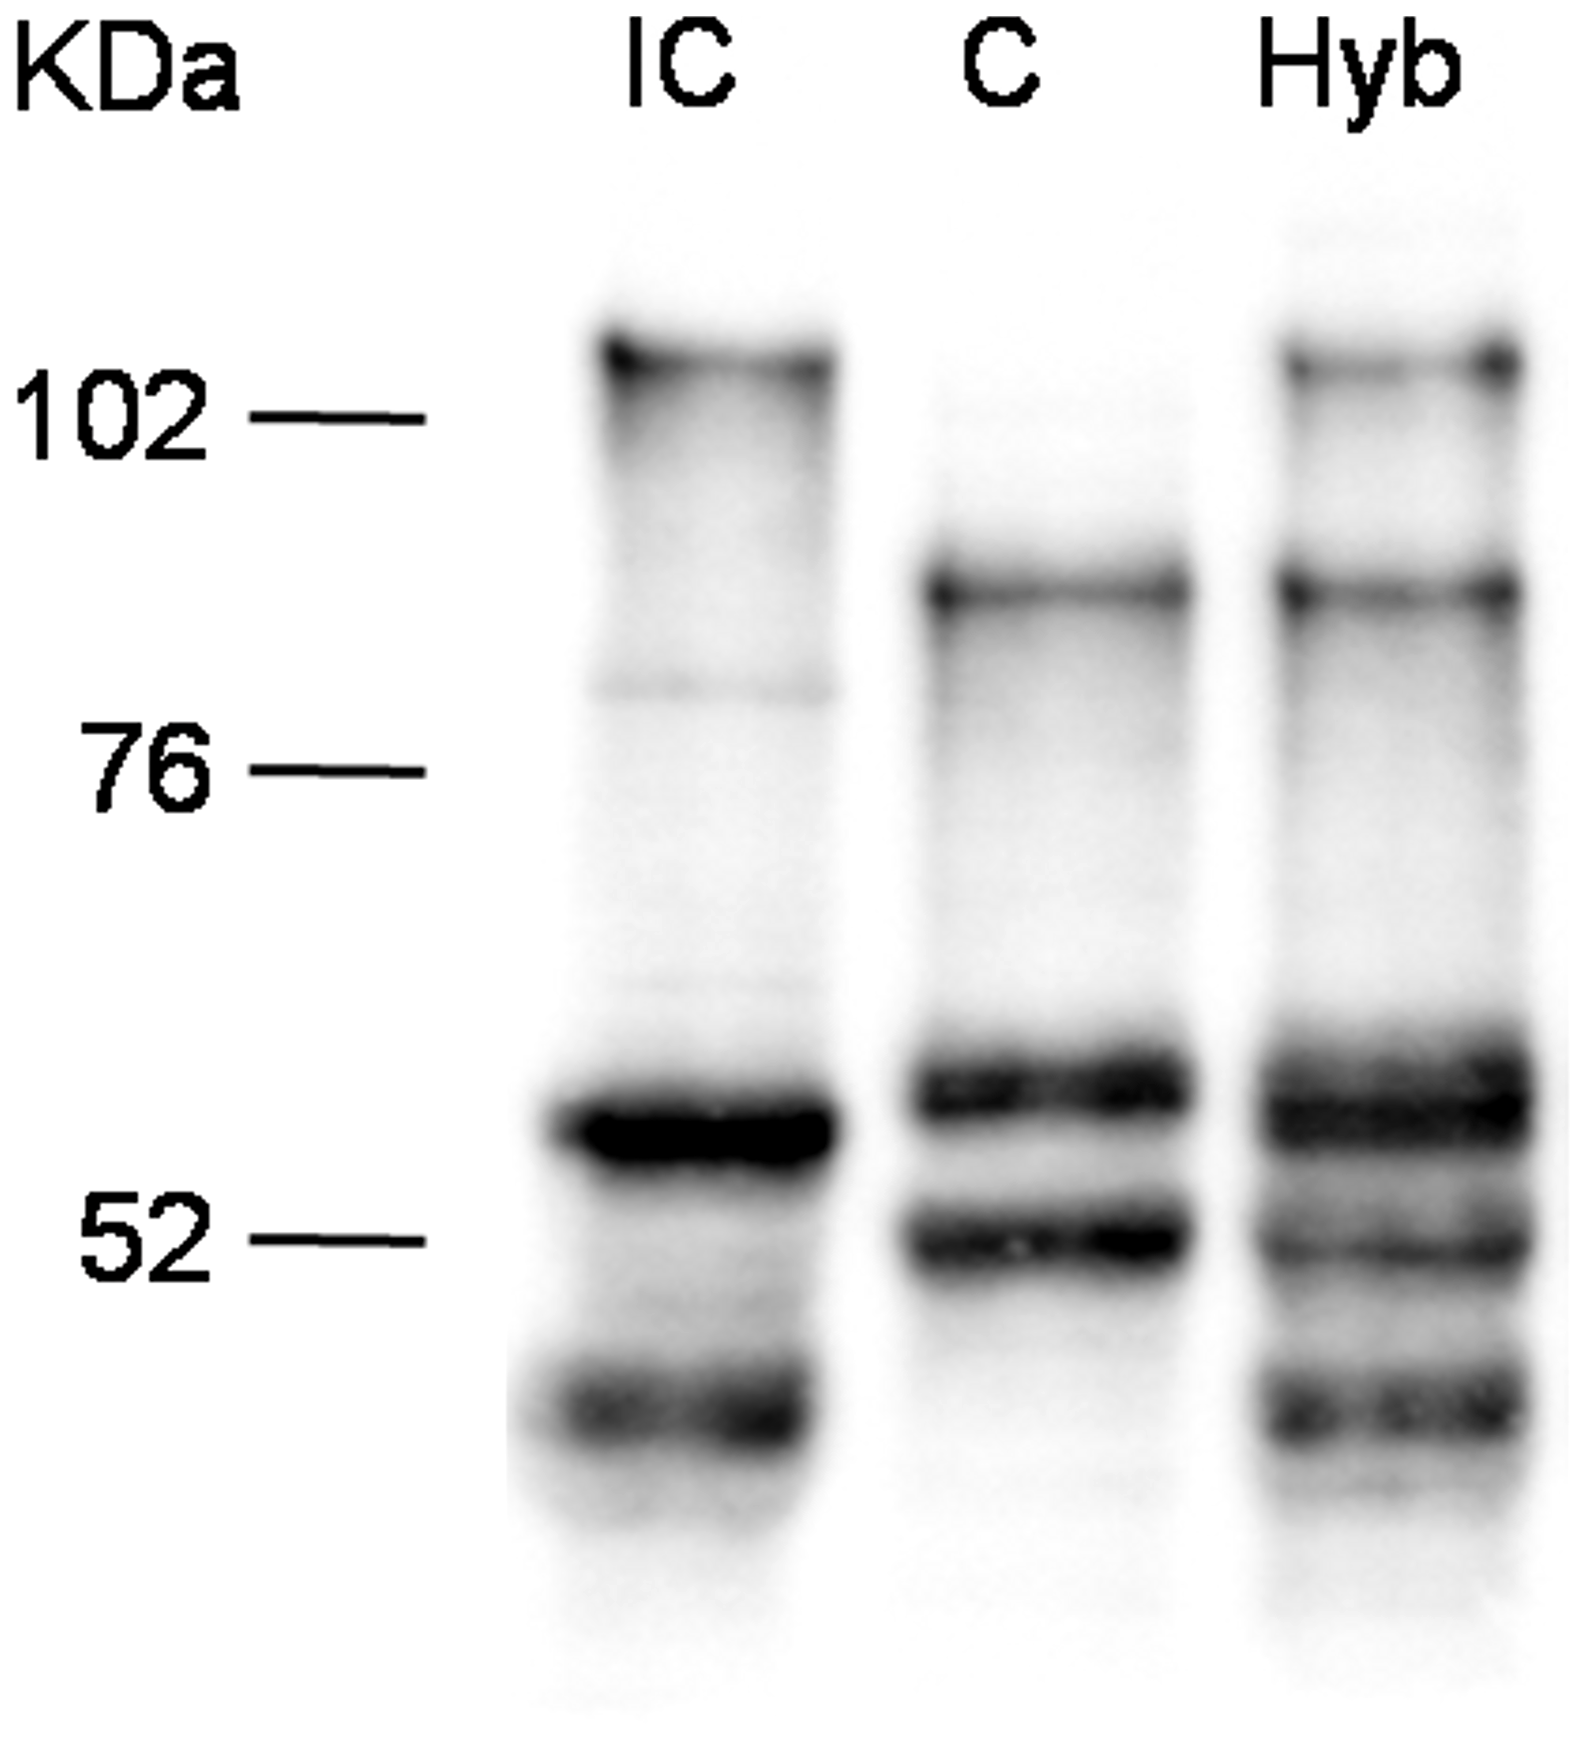 Western blots analysis on <i>Sm</i>PoMuc proteins from C/IC hybrids and C and IC control strains.